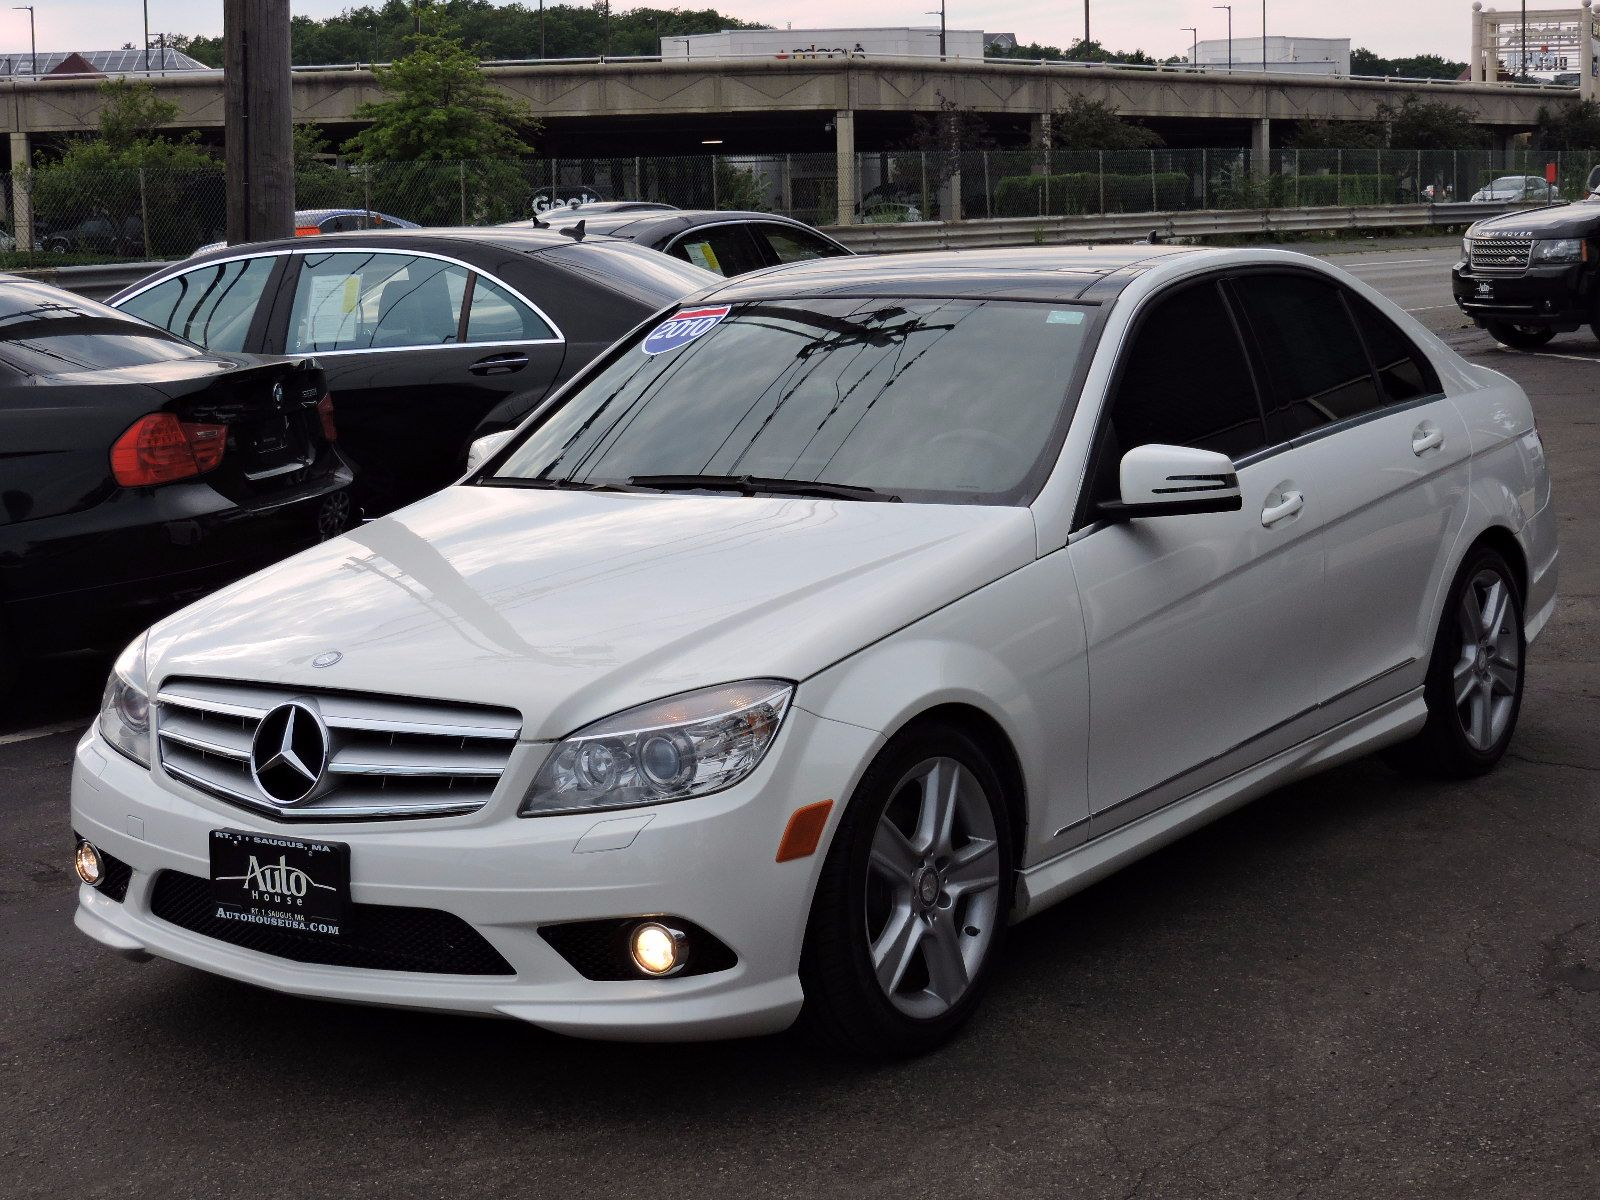 Used 2010 mercedes benz c300 luxury at auto house usa saugus for Mercedes benz 2010 c300 price